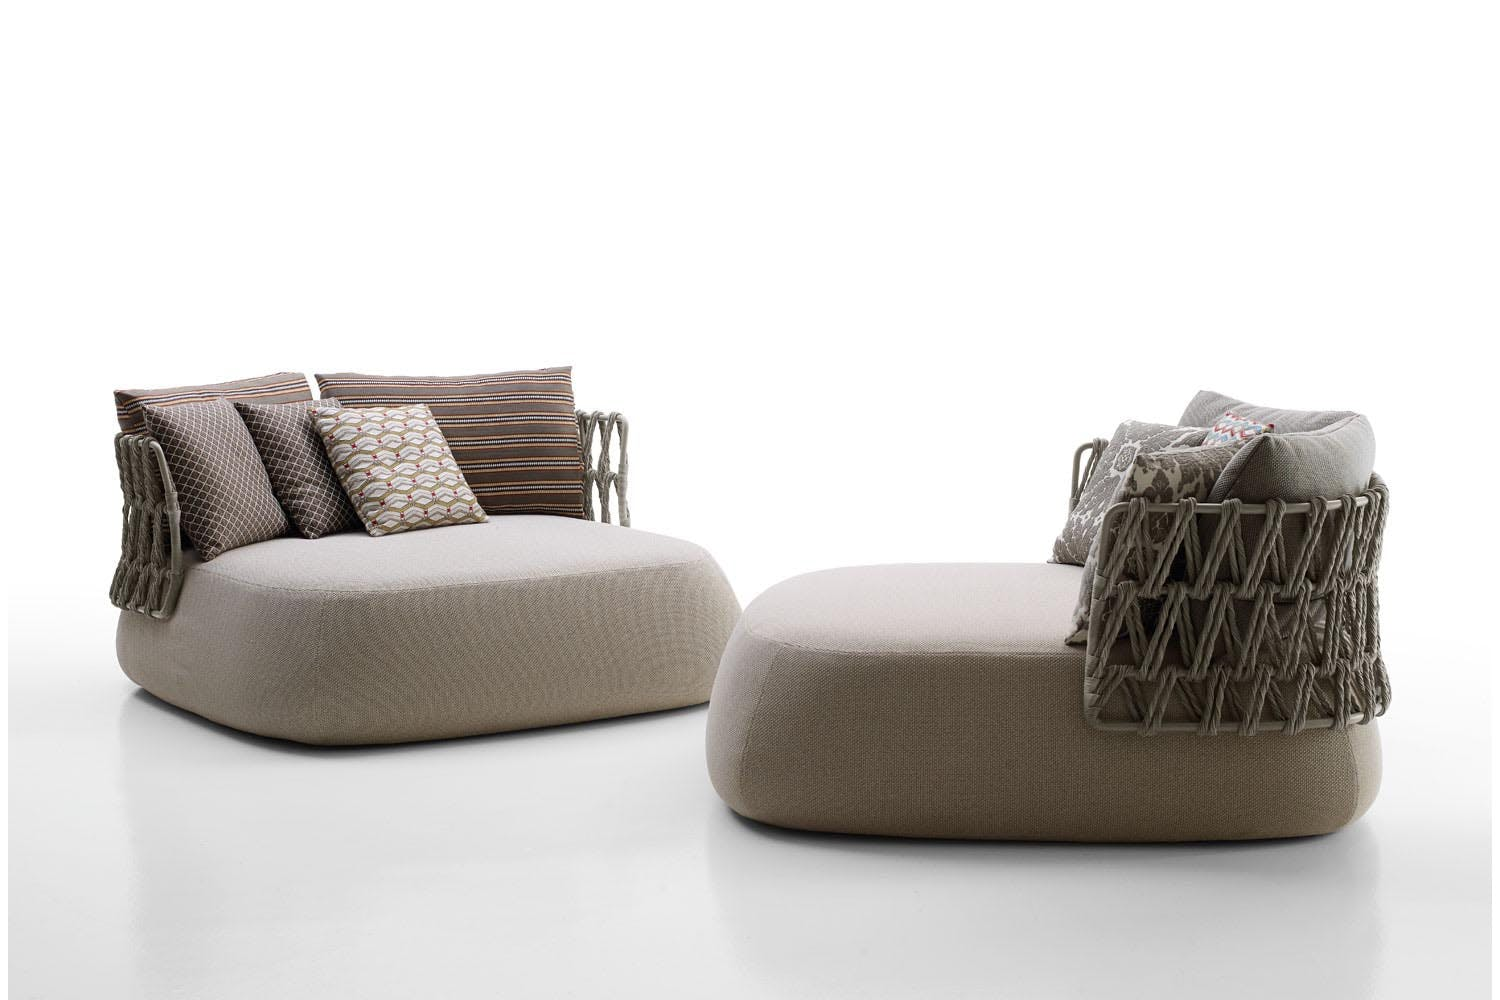 fat sofa outdoor by patricia urquiola for b b italia. Black Bedroom Furniture Sets. Home Design Ideas